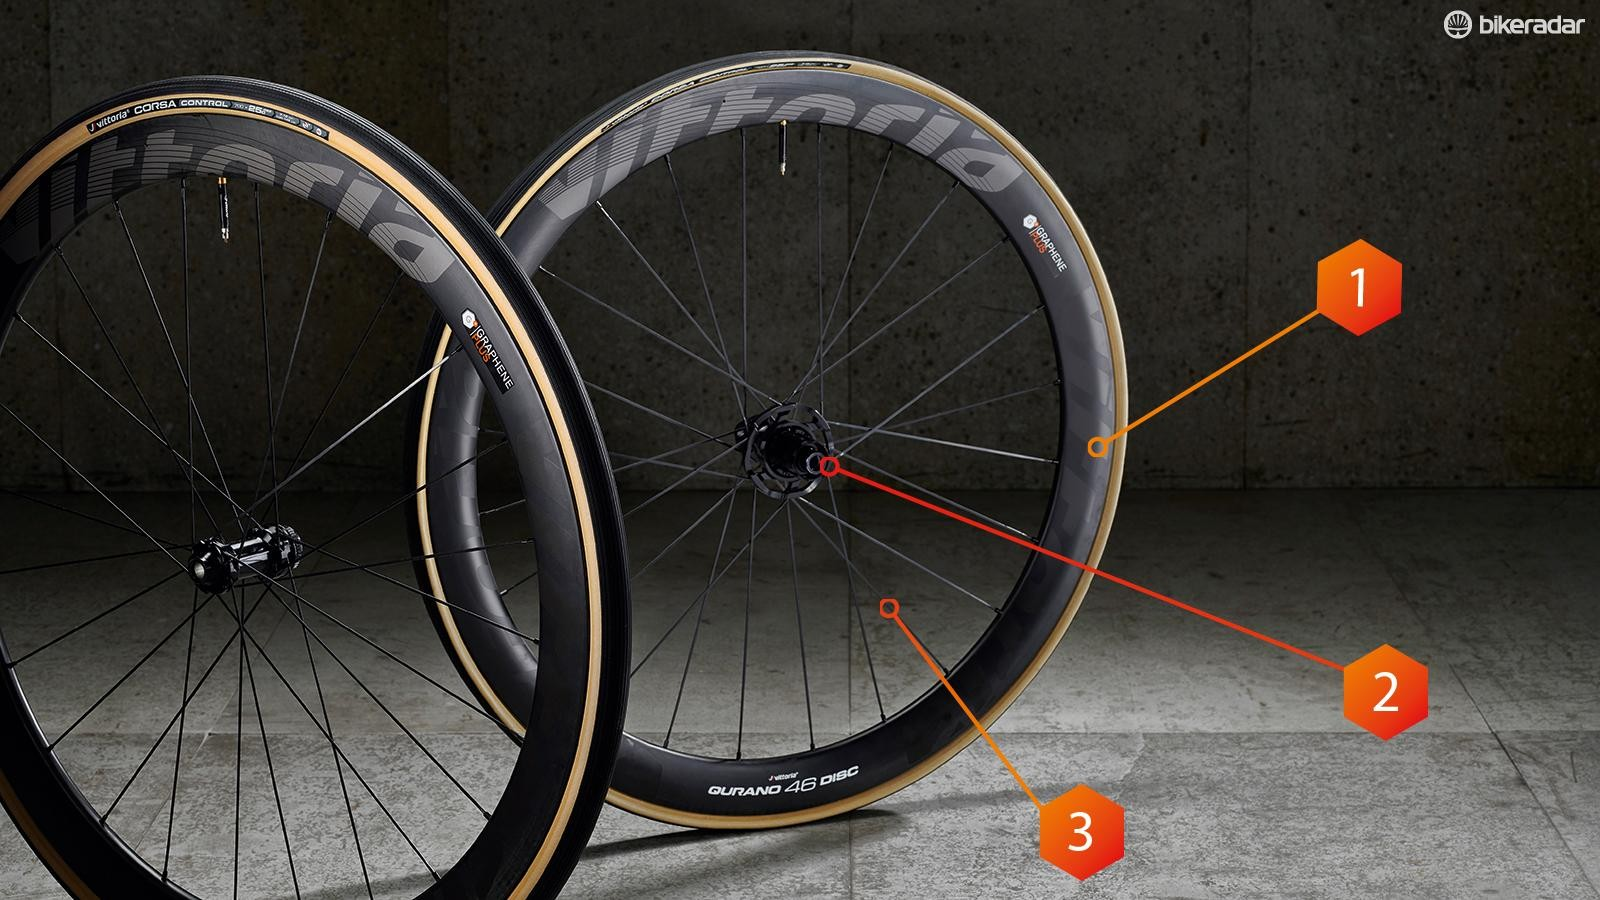 92bf9469c3c These Qurano 46 wheels are the latest addition to the graphene-infused range